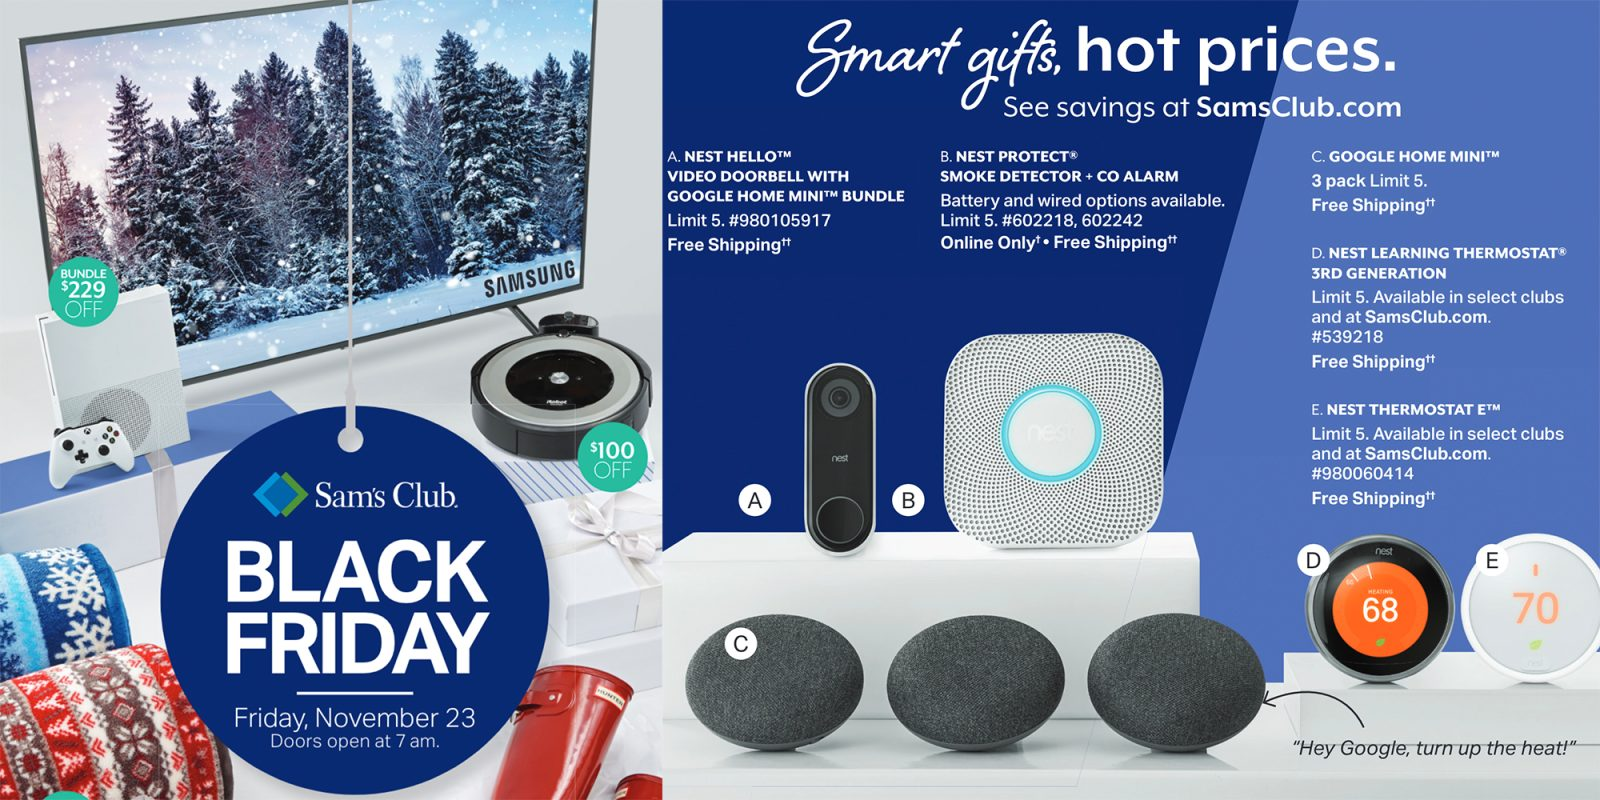 e8d639a347a Sam s Club Black Friday ad reveals extensive Nest discounts